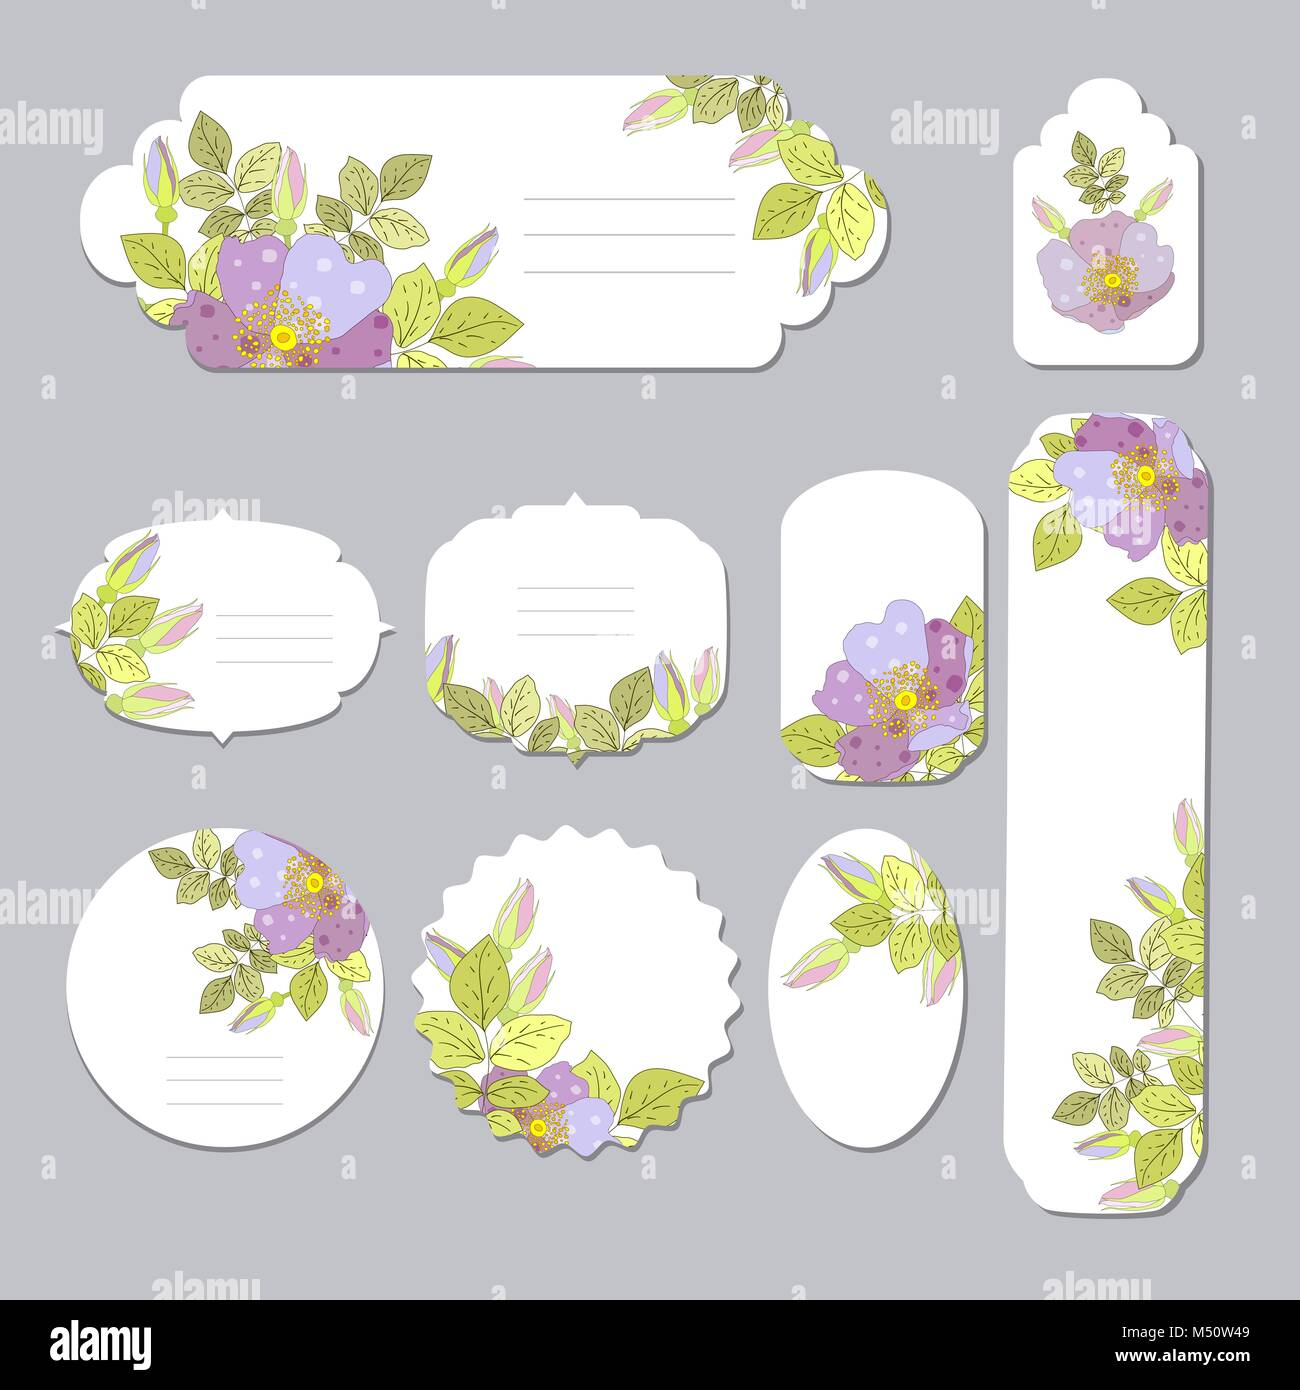 Floral spring templates with cute flowers for romantic and easter floral spring templates with cute flowers for romantic and easter design announcements greeting cards posters advertisement mightylinksfo